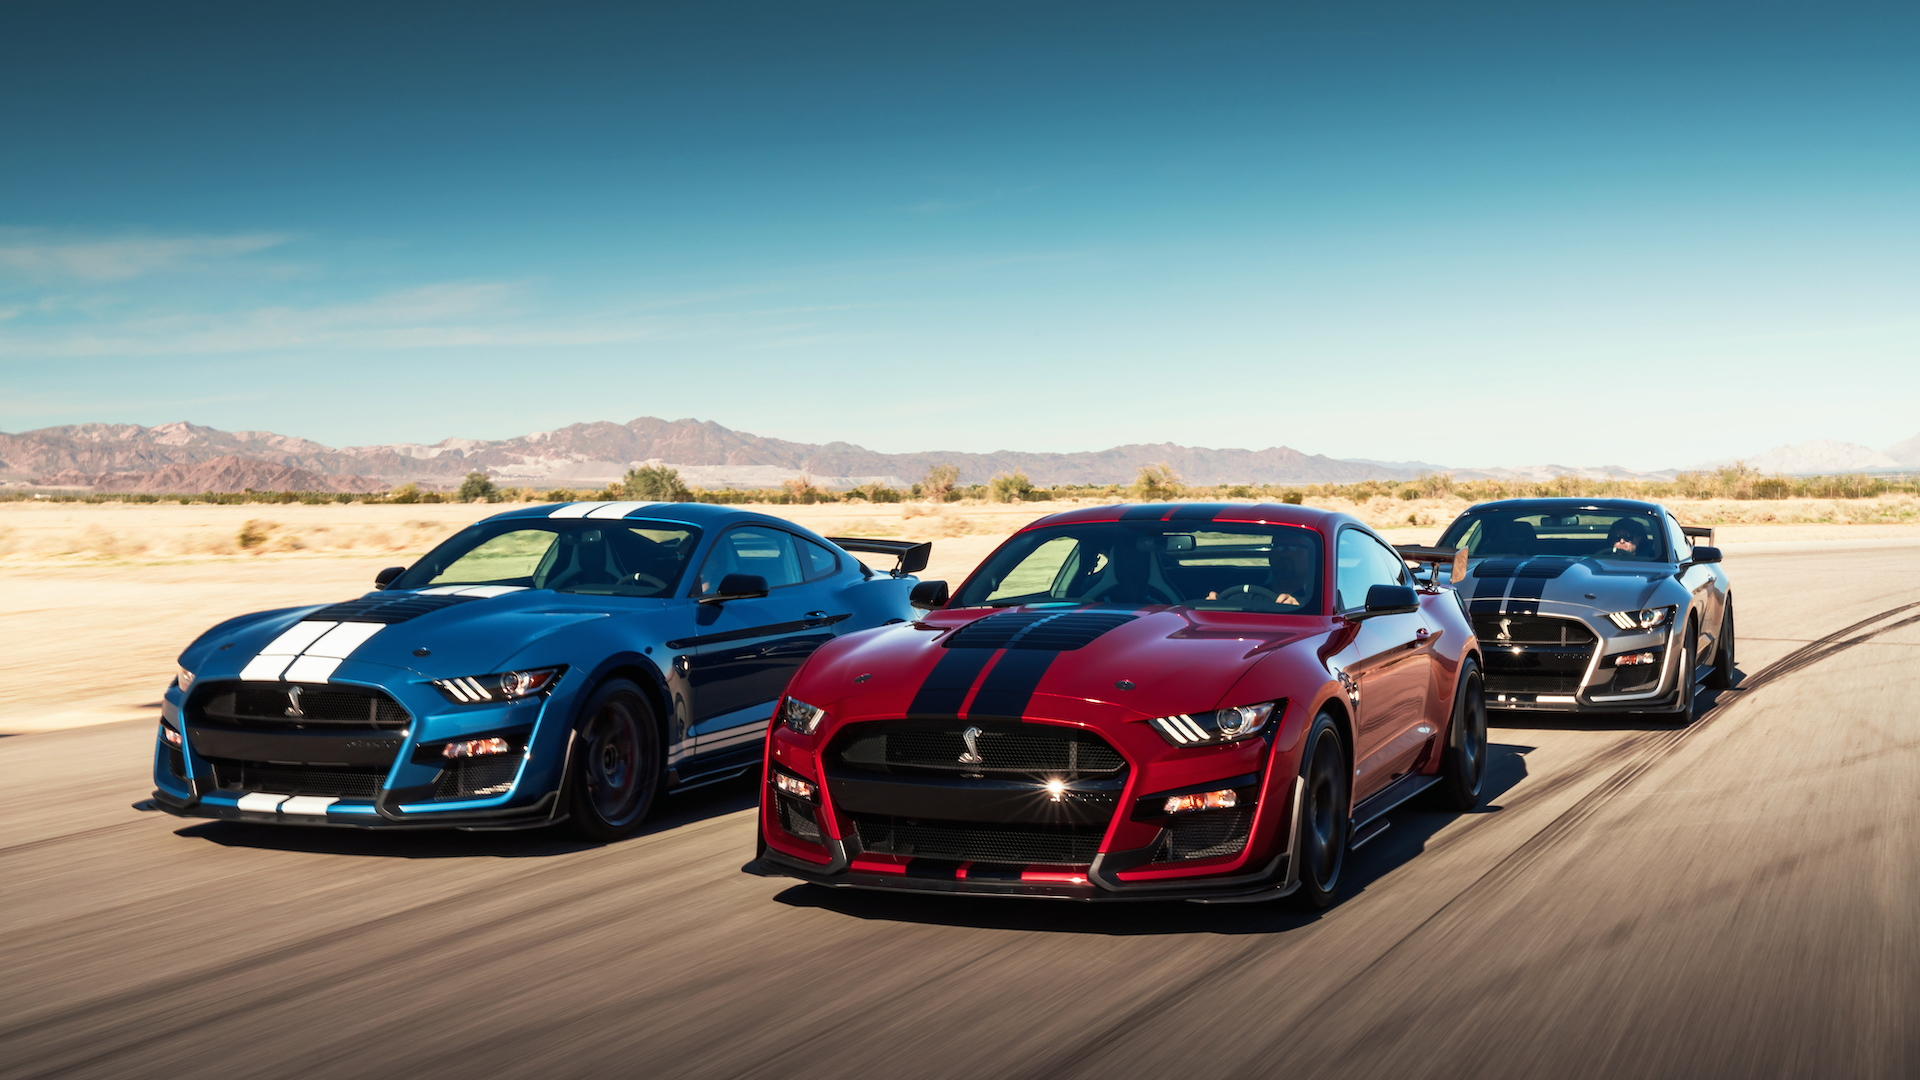 The ford mustang shelby gt500 is better than ever before. Ford Mustang Shelby Gt500 Motor Authority Best Car To Buy 2021 Nominee